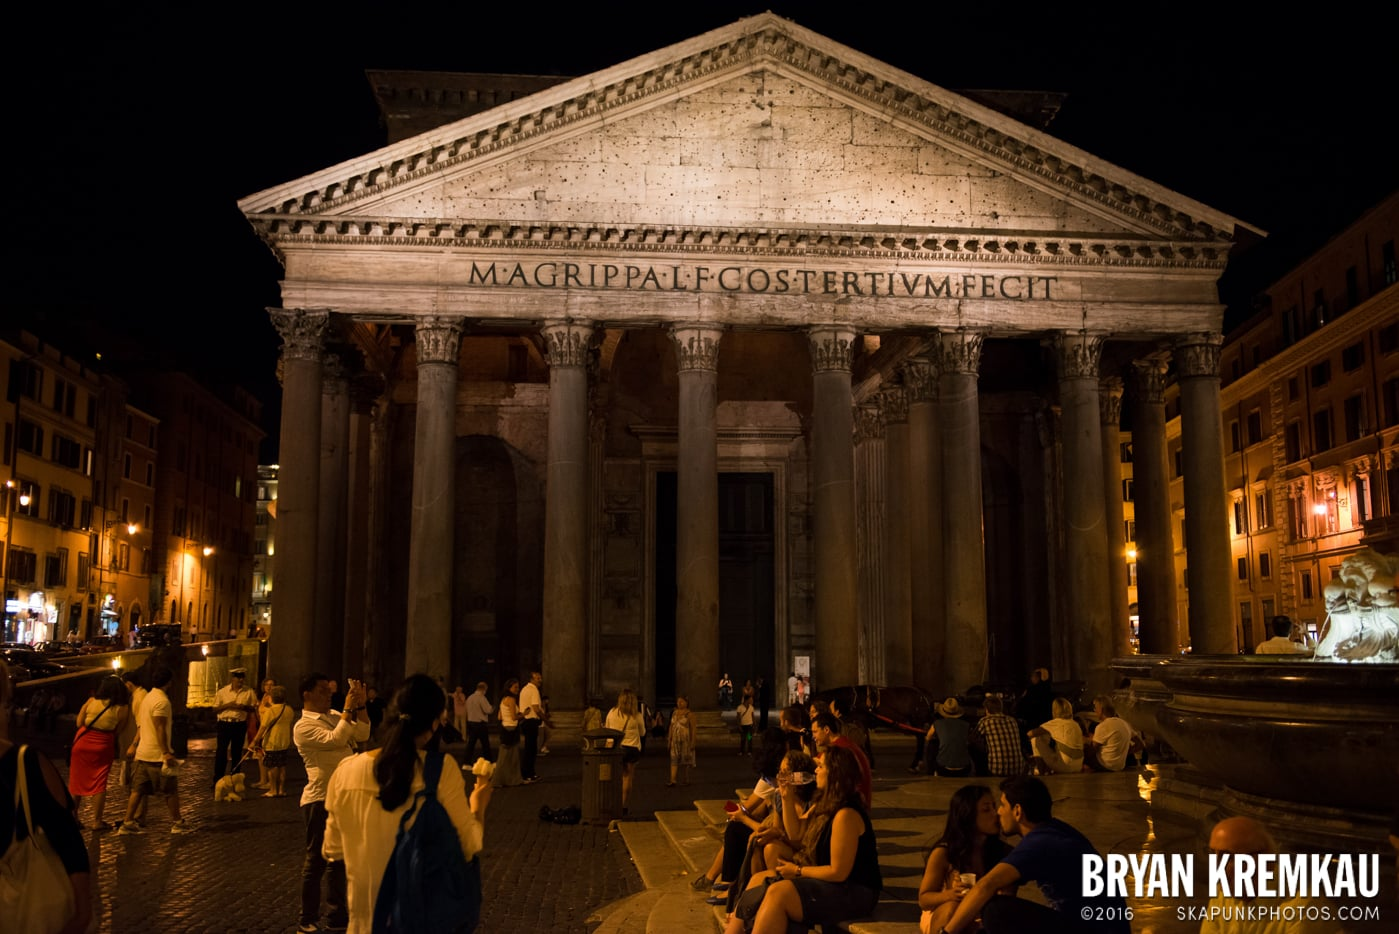 Italy Vacation - Day 1: Rome - 9.9.13 (5)